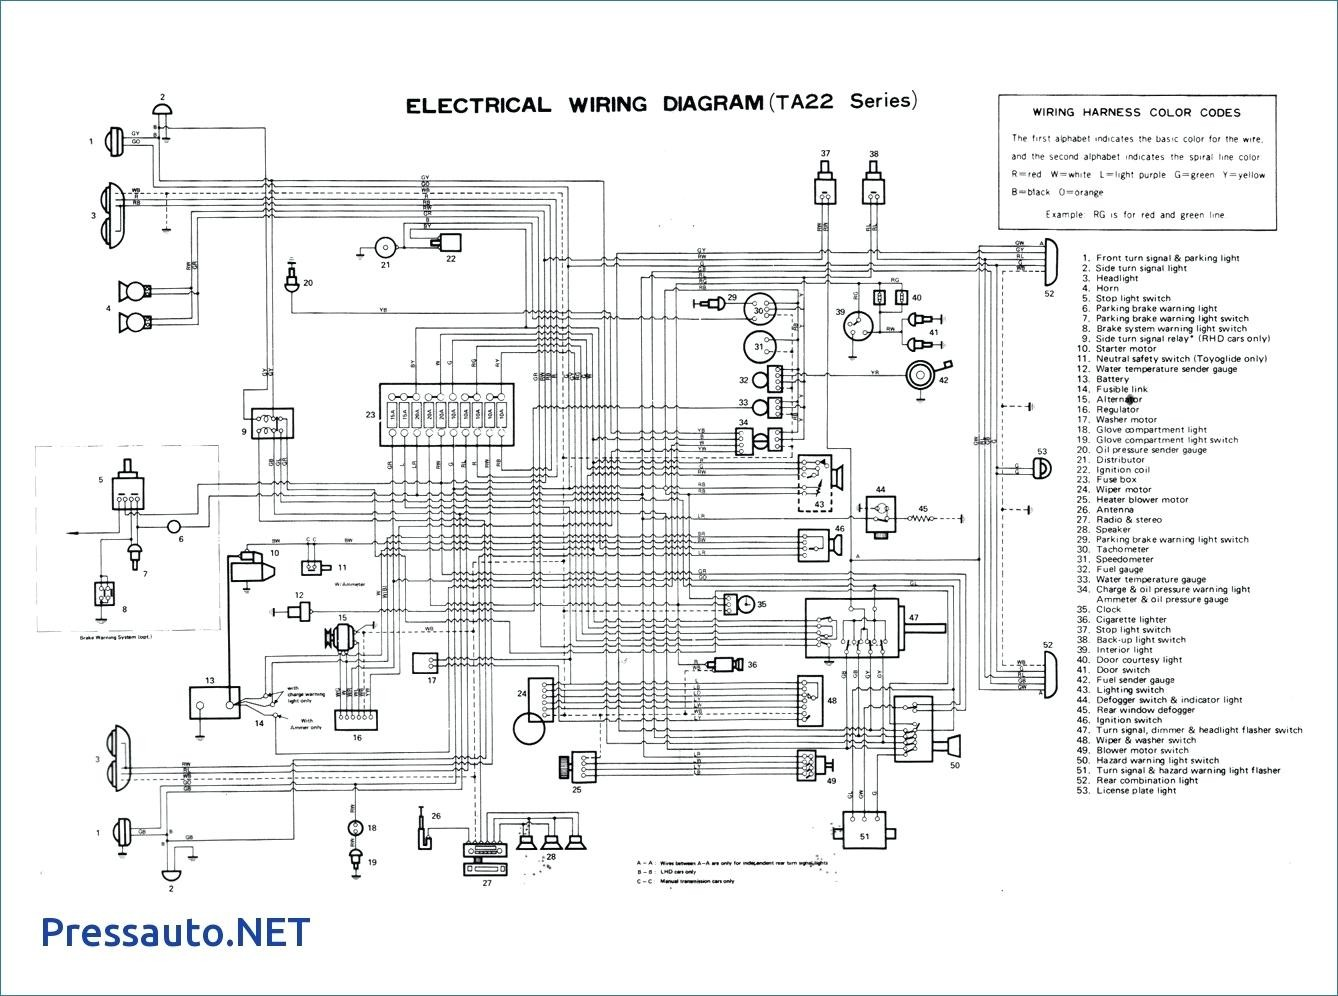 Kb Jpeg Ignition Wiring Diagram Stx38 Tractor Proficad 65 By Software For Electrical Diagrams Schematics Rh Abetter Pw